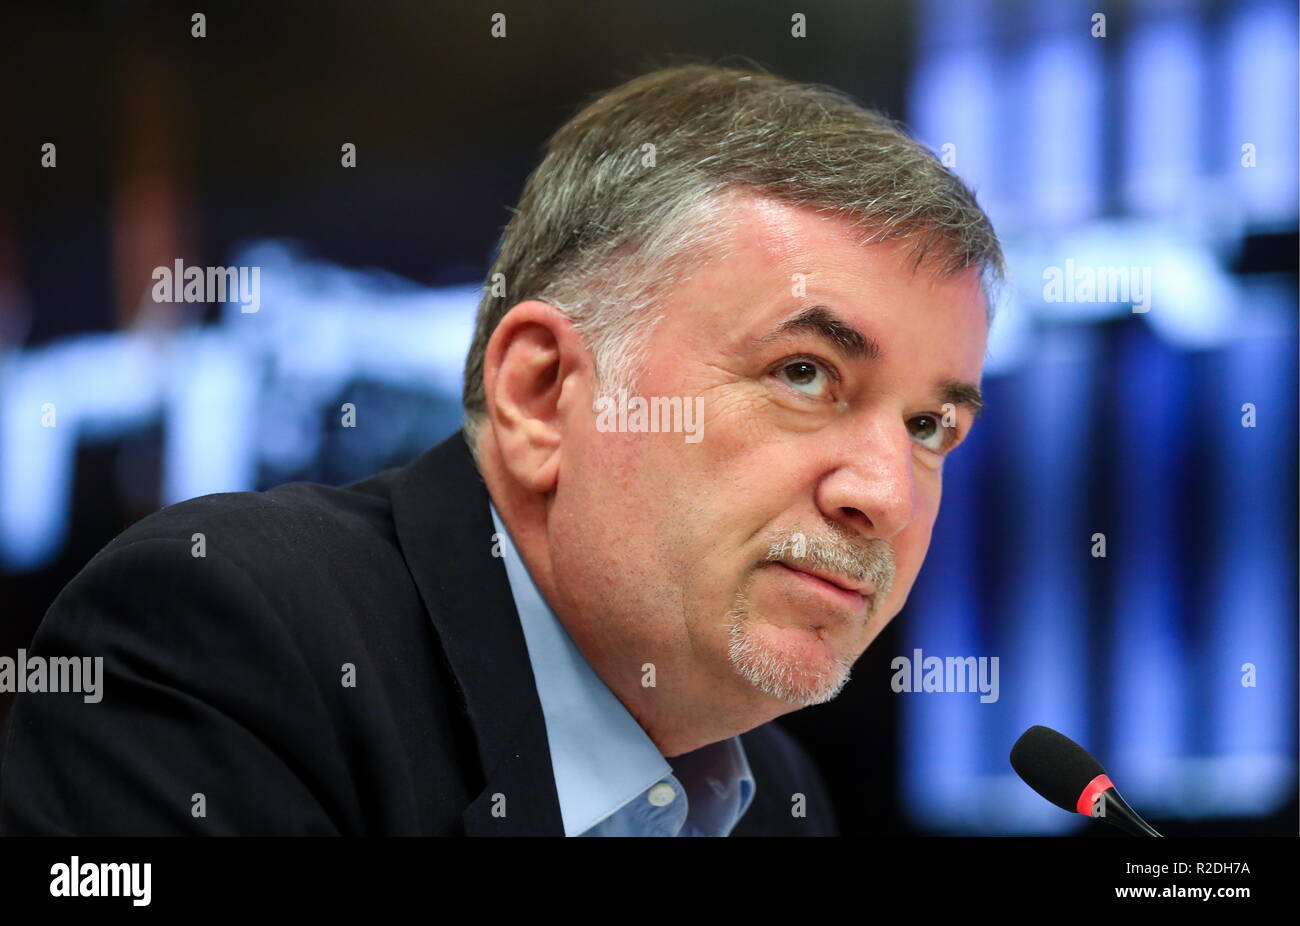 Moscow, Russia. 19th Nov, 2018. MOSCOW, RUSSIA - NOVEMBER 19, 2018: Roscosmos Spokesman Vladimir Ustimenko attends a press conference marking the 20th anniversary of the International Space Station. Sergei Savostyanov/TASS Credit: ITAR-TASS News Agency/Alamy Live News - Stock Image